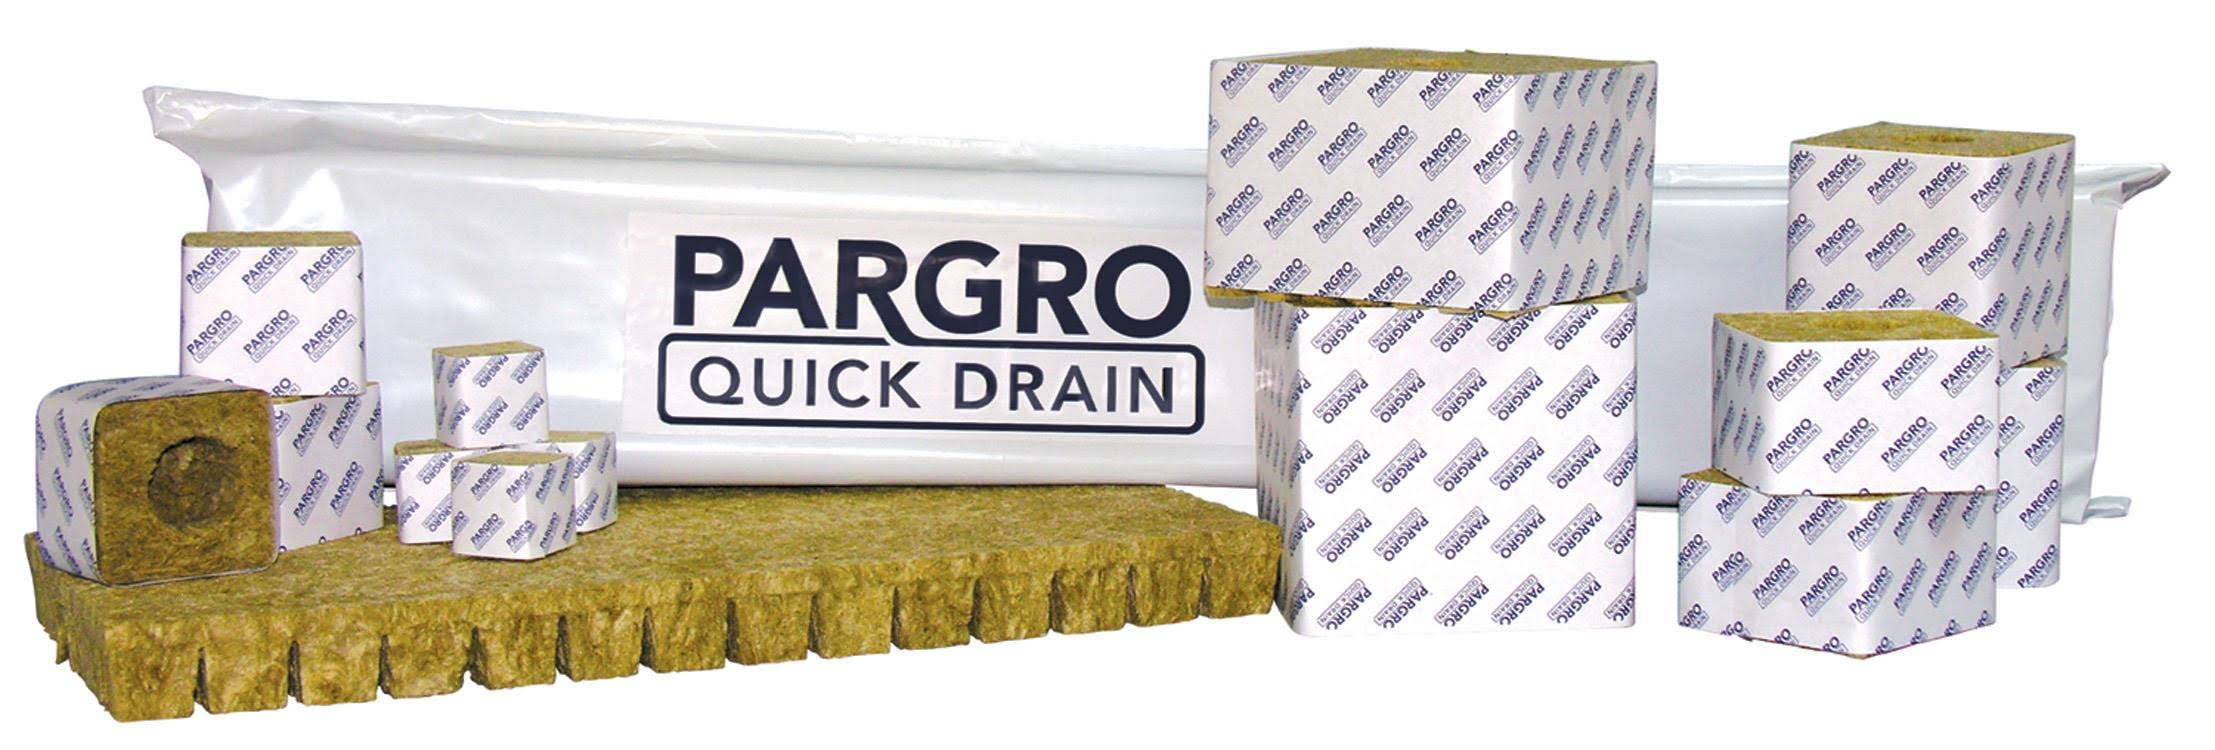 "GRODAN Pargro Quick Drain Stonewool Block With Hole - 4"" x 4"", 12units"